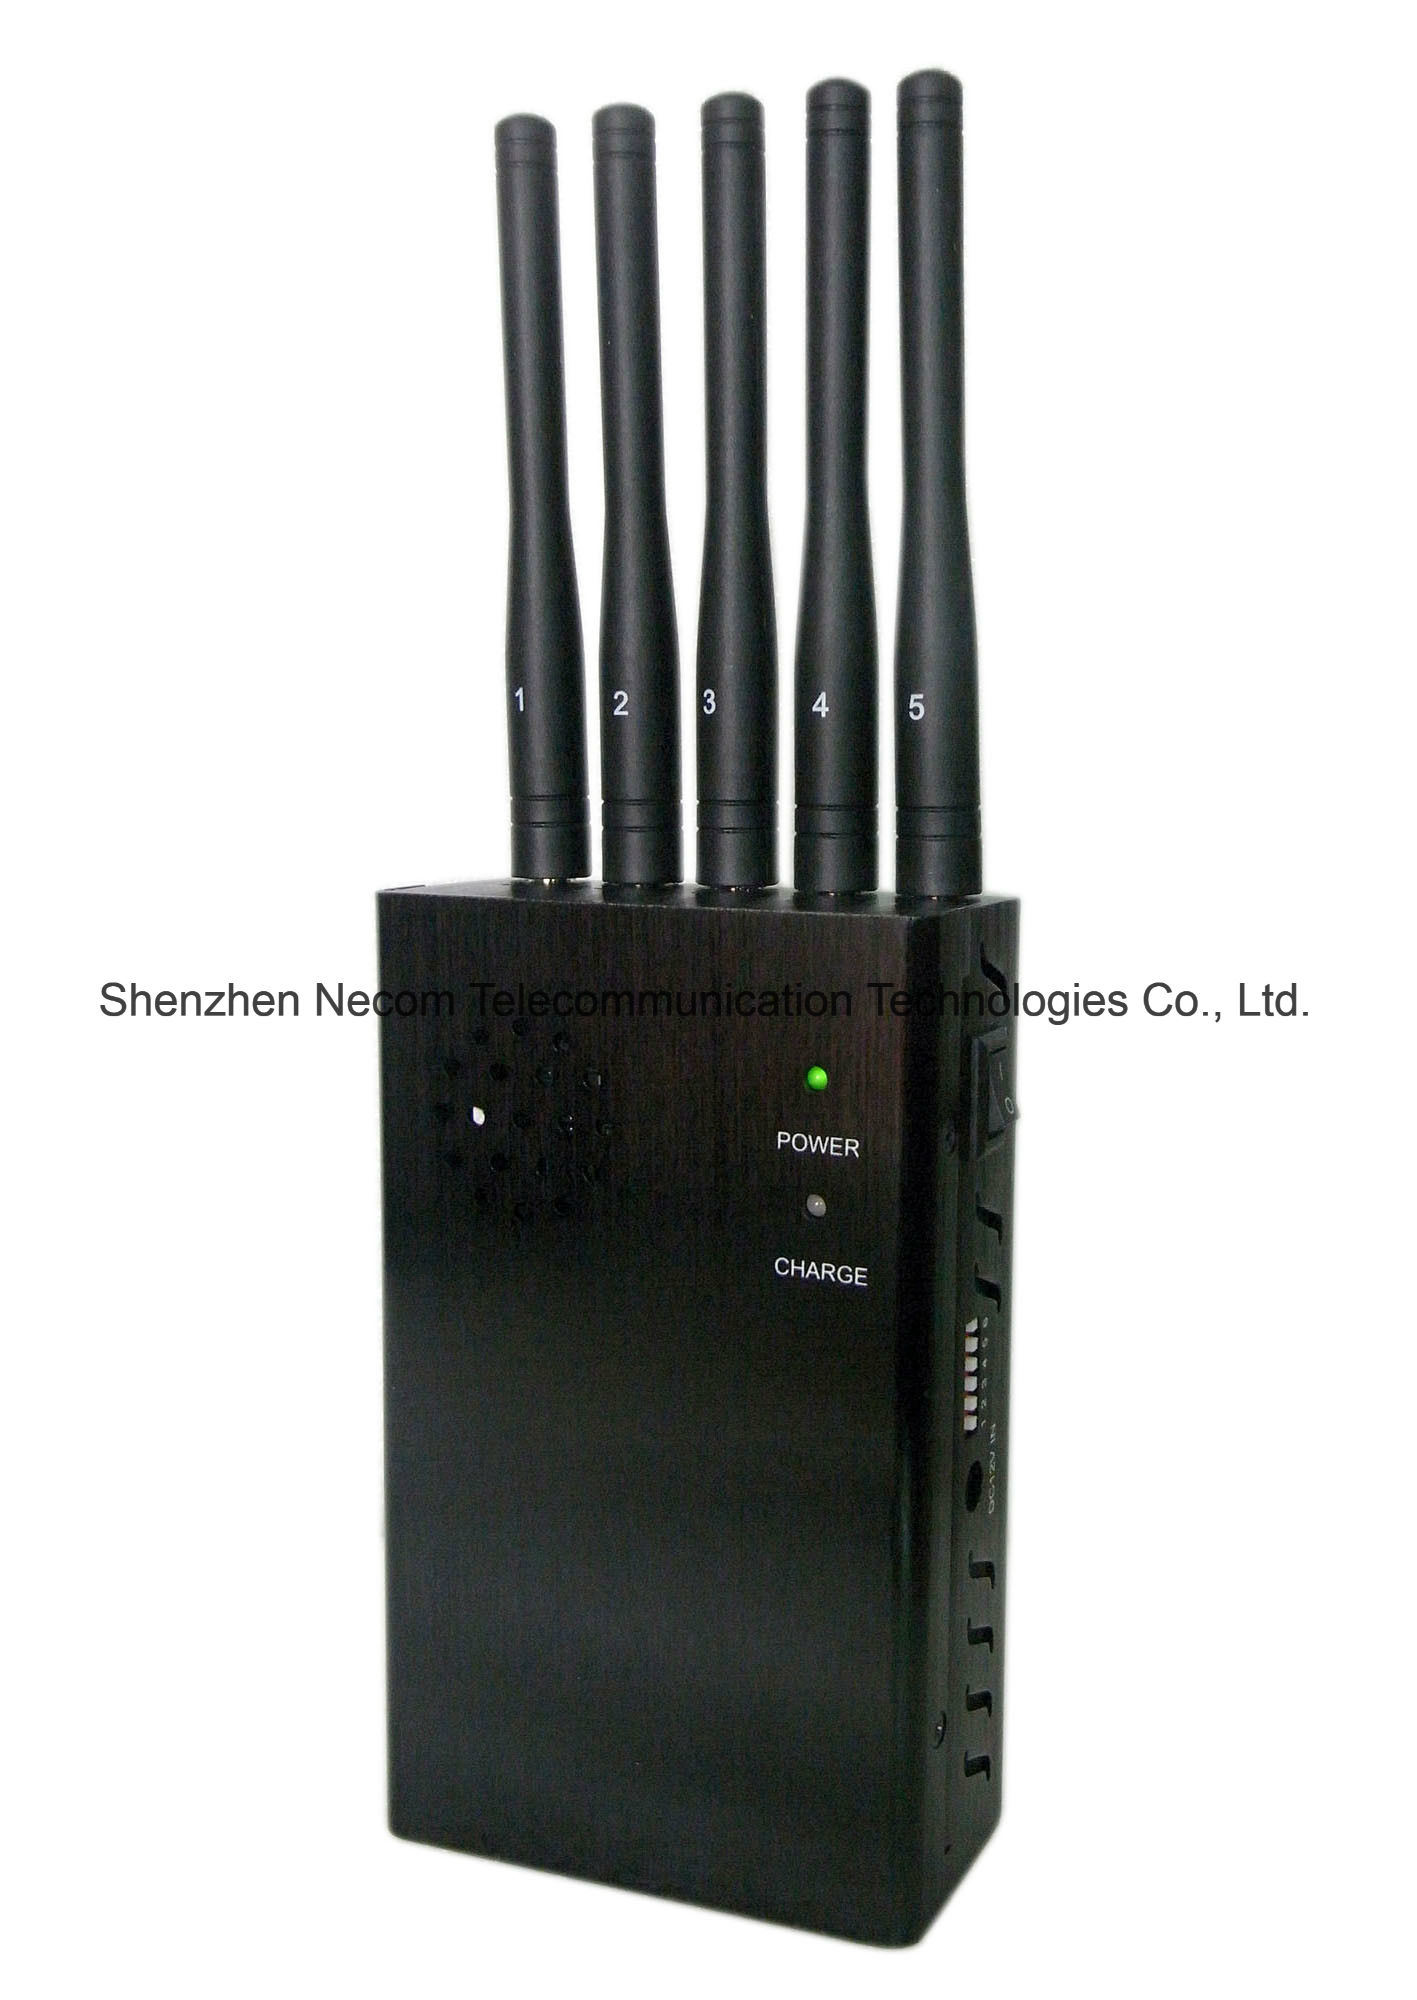 phone jammers china fines - China 5 Antenna Big Portable Cell Jammer, Portable GPS Jammer, Portable WiFi Jammer, Jamming 2g+3G+4G+Gpsl1 - China 5 Band Signal Blockers, Five Antennas Jammers